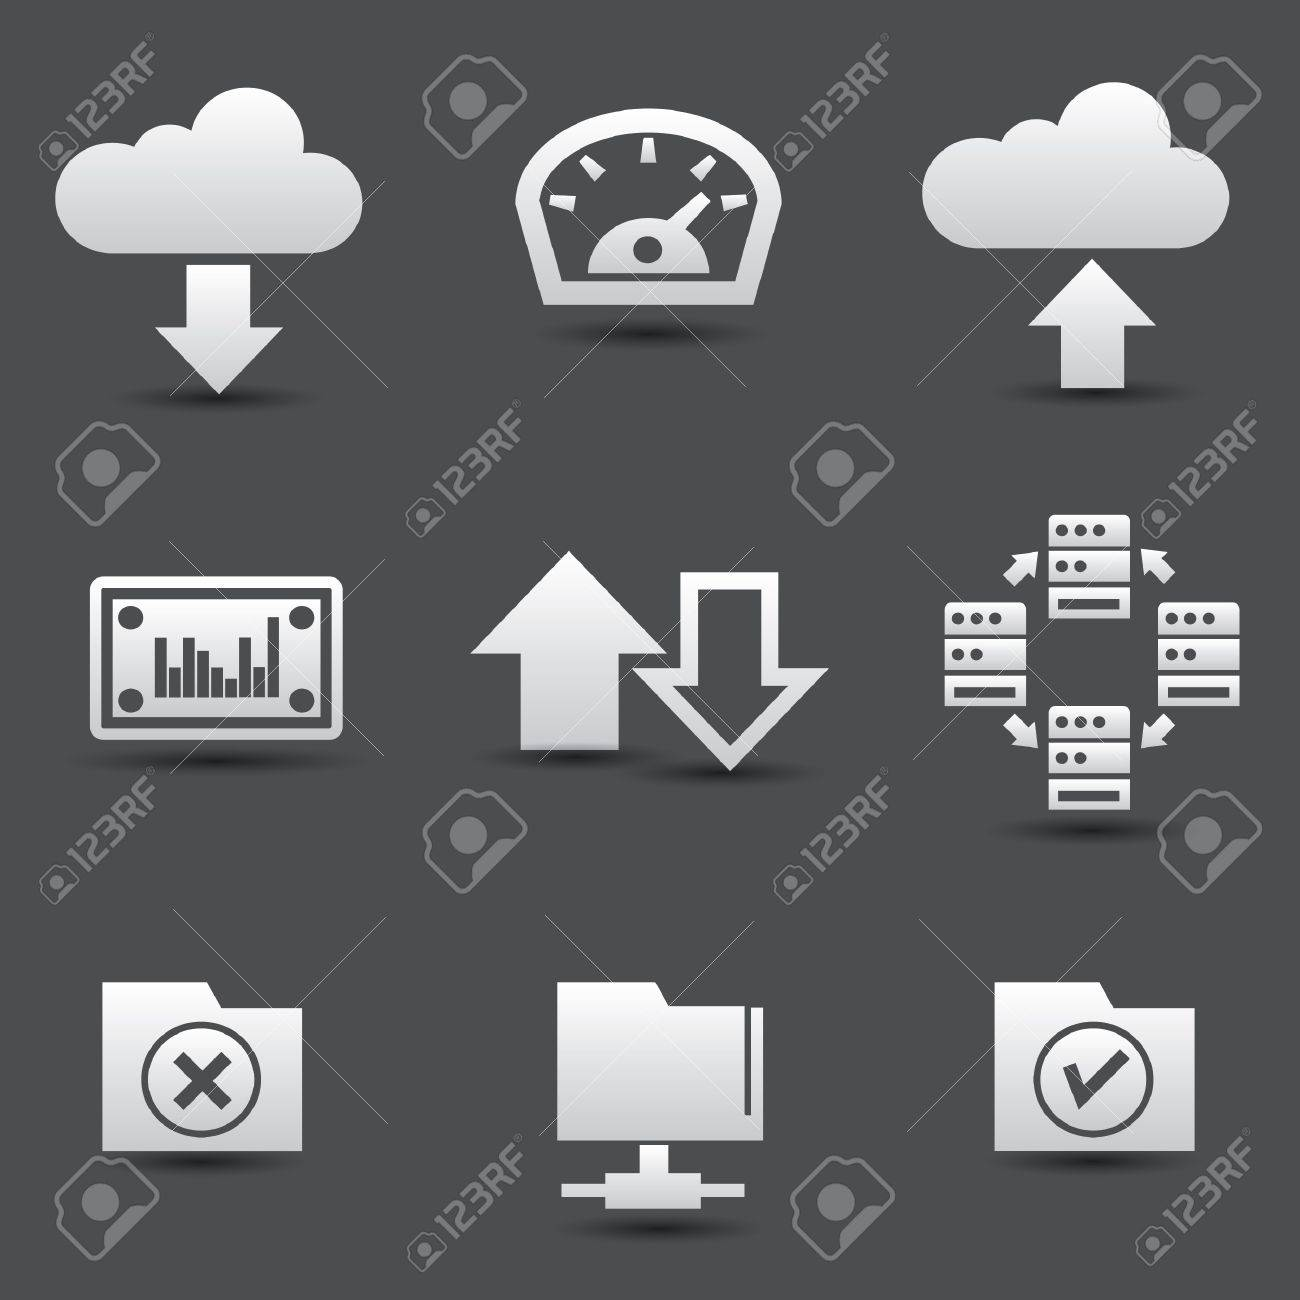 Sharing computer and data store icons Stock Vector - 19973046